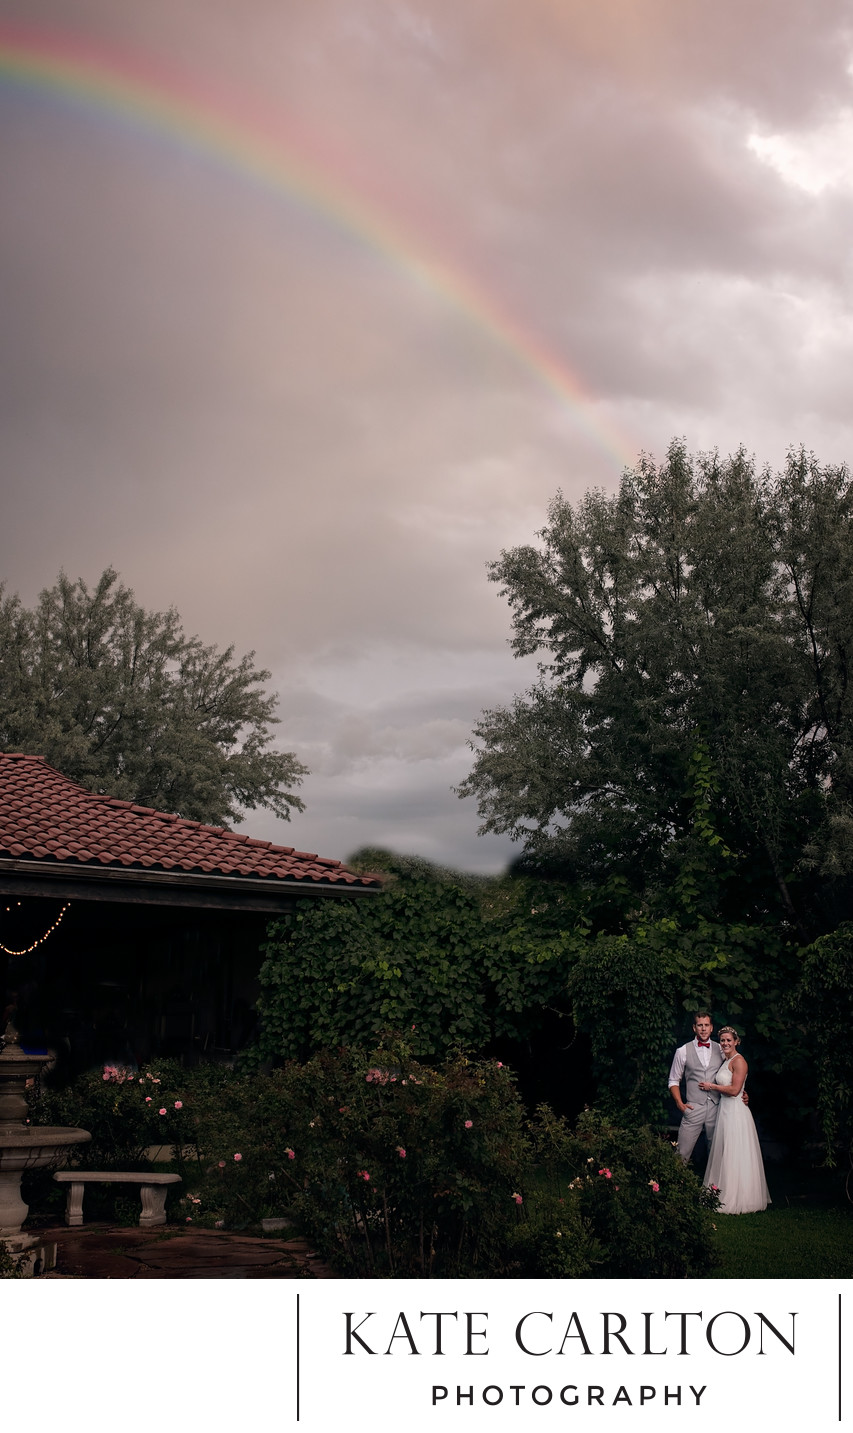 Garden Rainbow Wedding Photographer